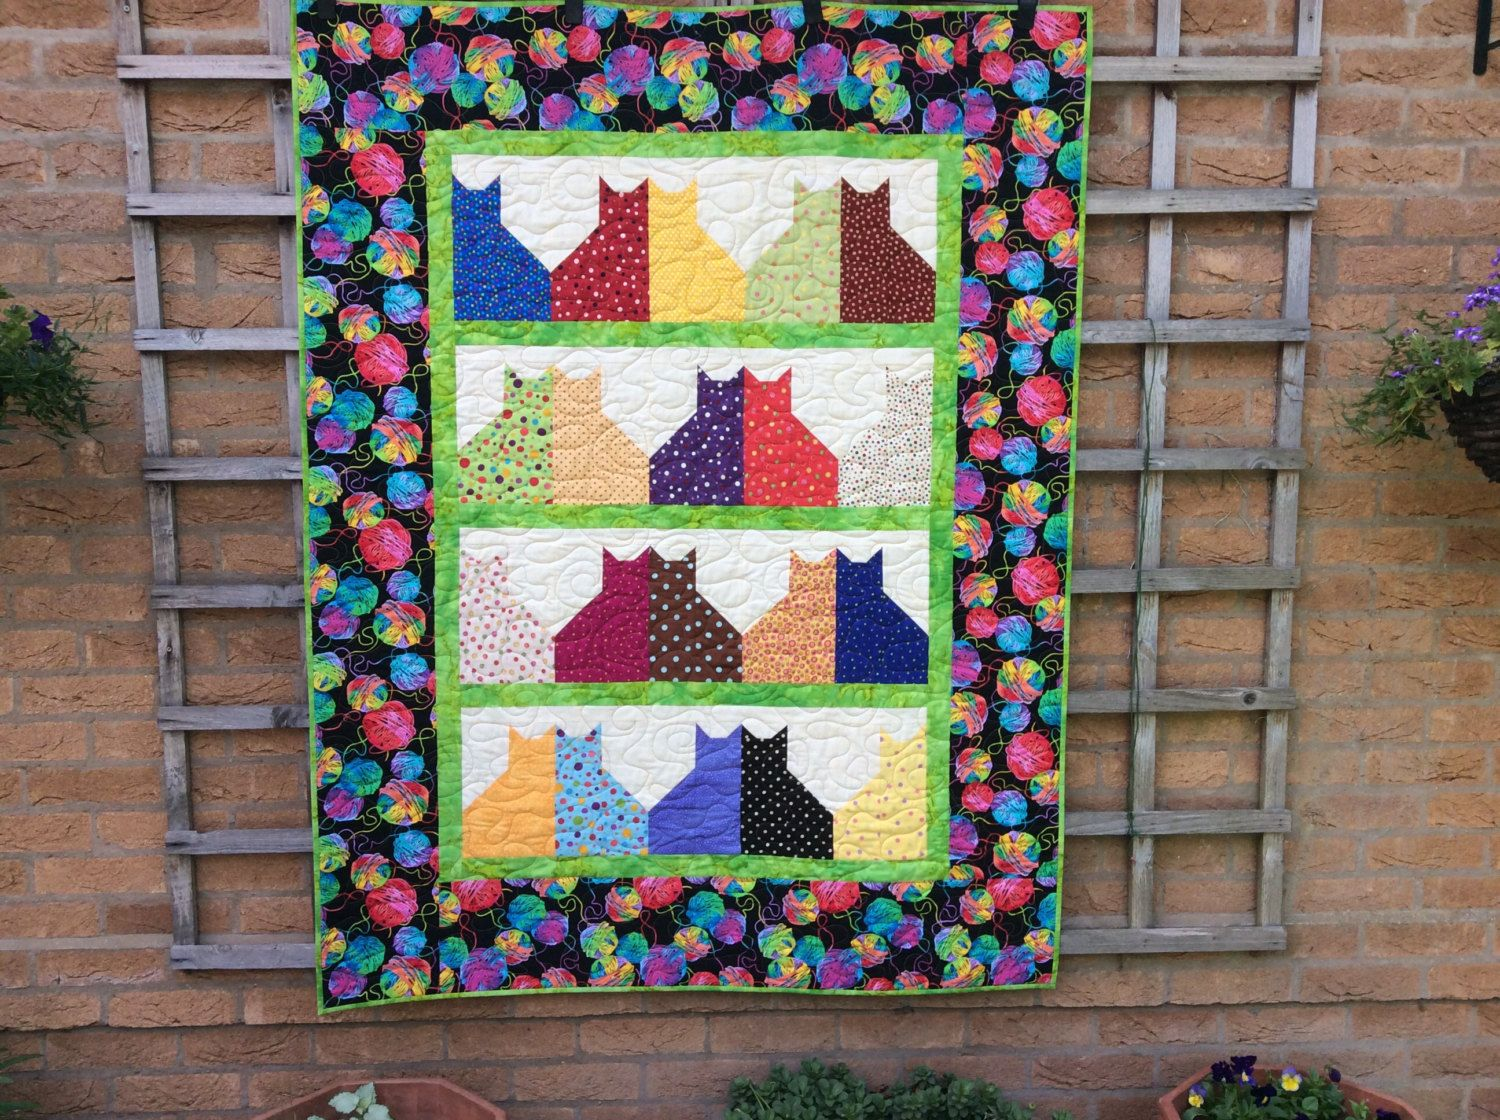 Handmade cat quilt patchwork quiltrowhome decoreaster gift handmade cat quilt patchwork quiltrowhome decoreaster gift modern negle Choice Image